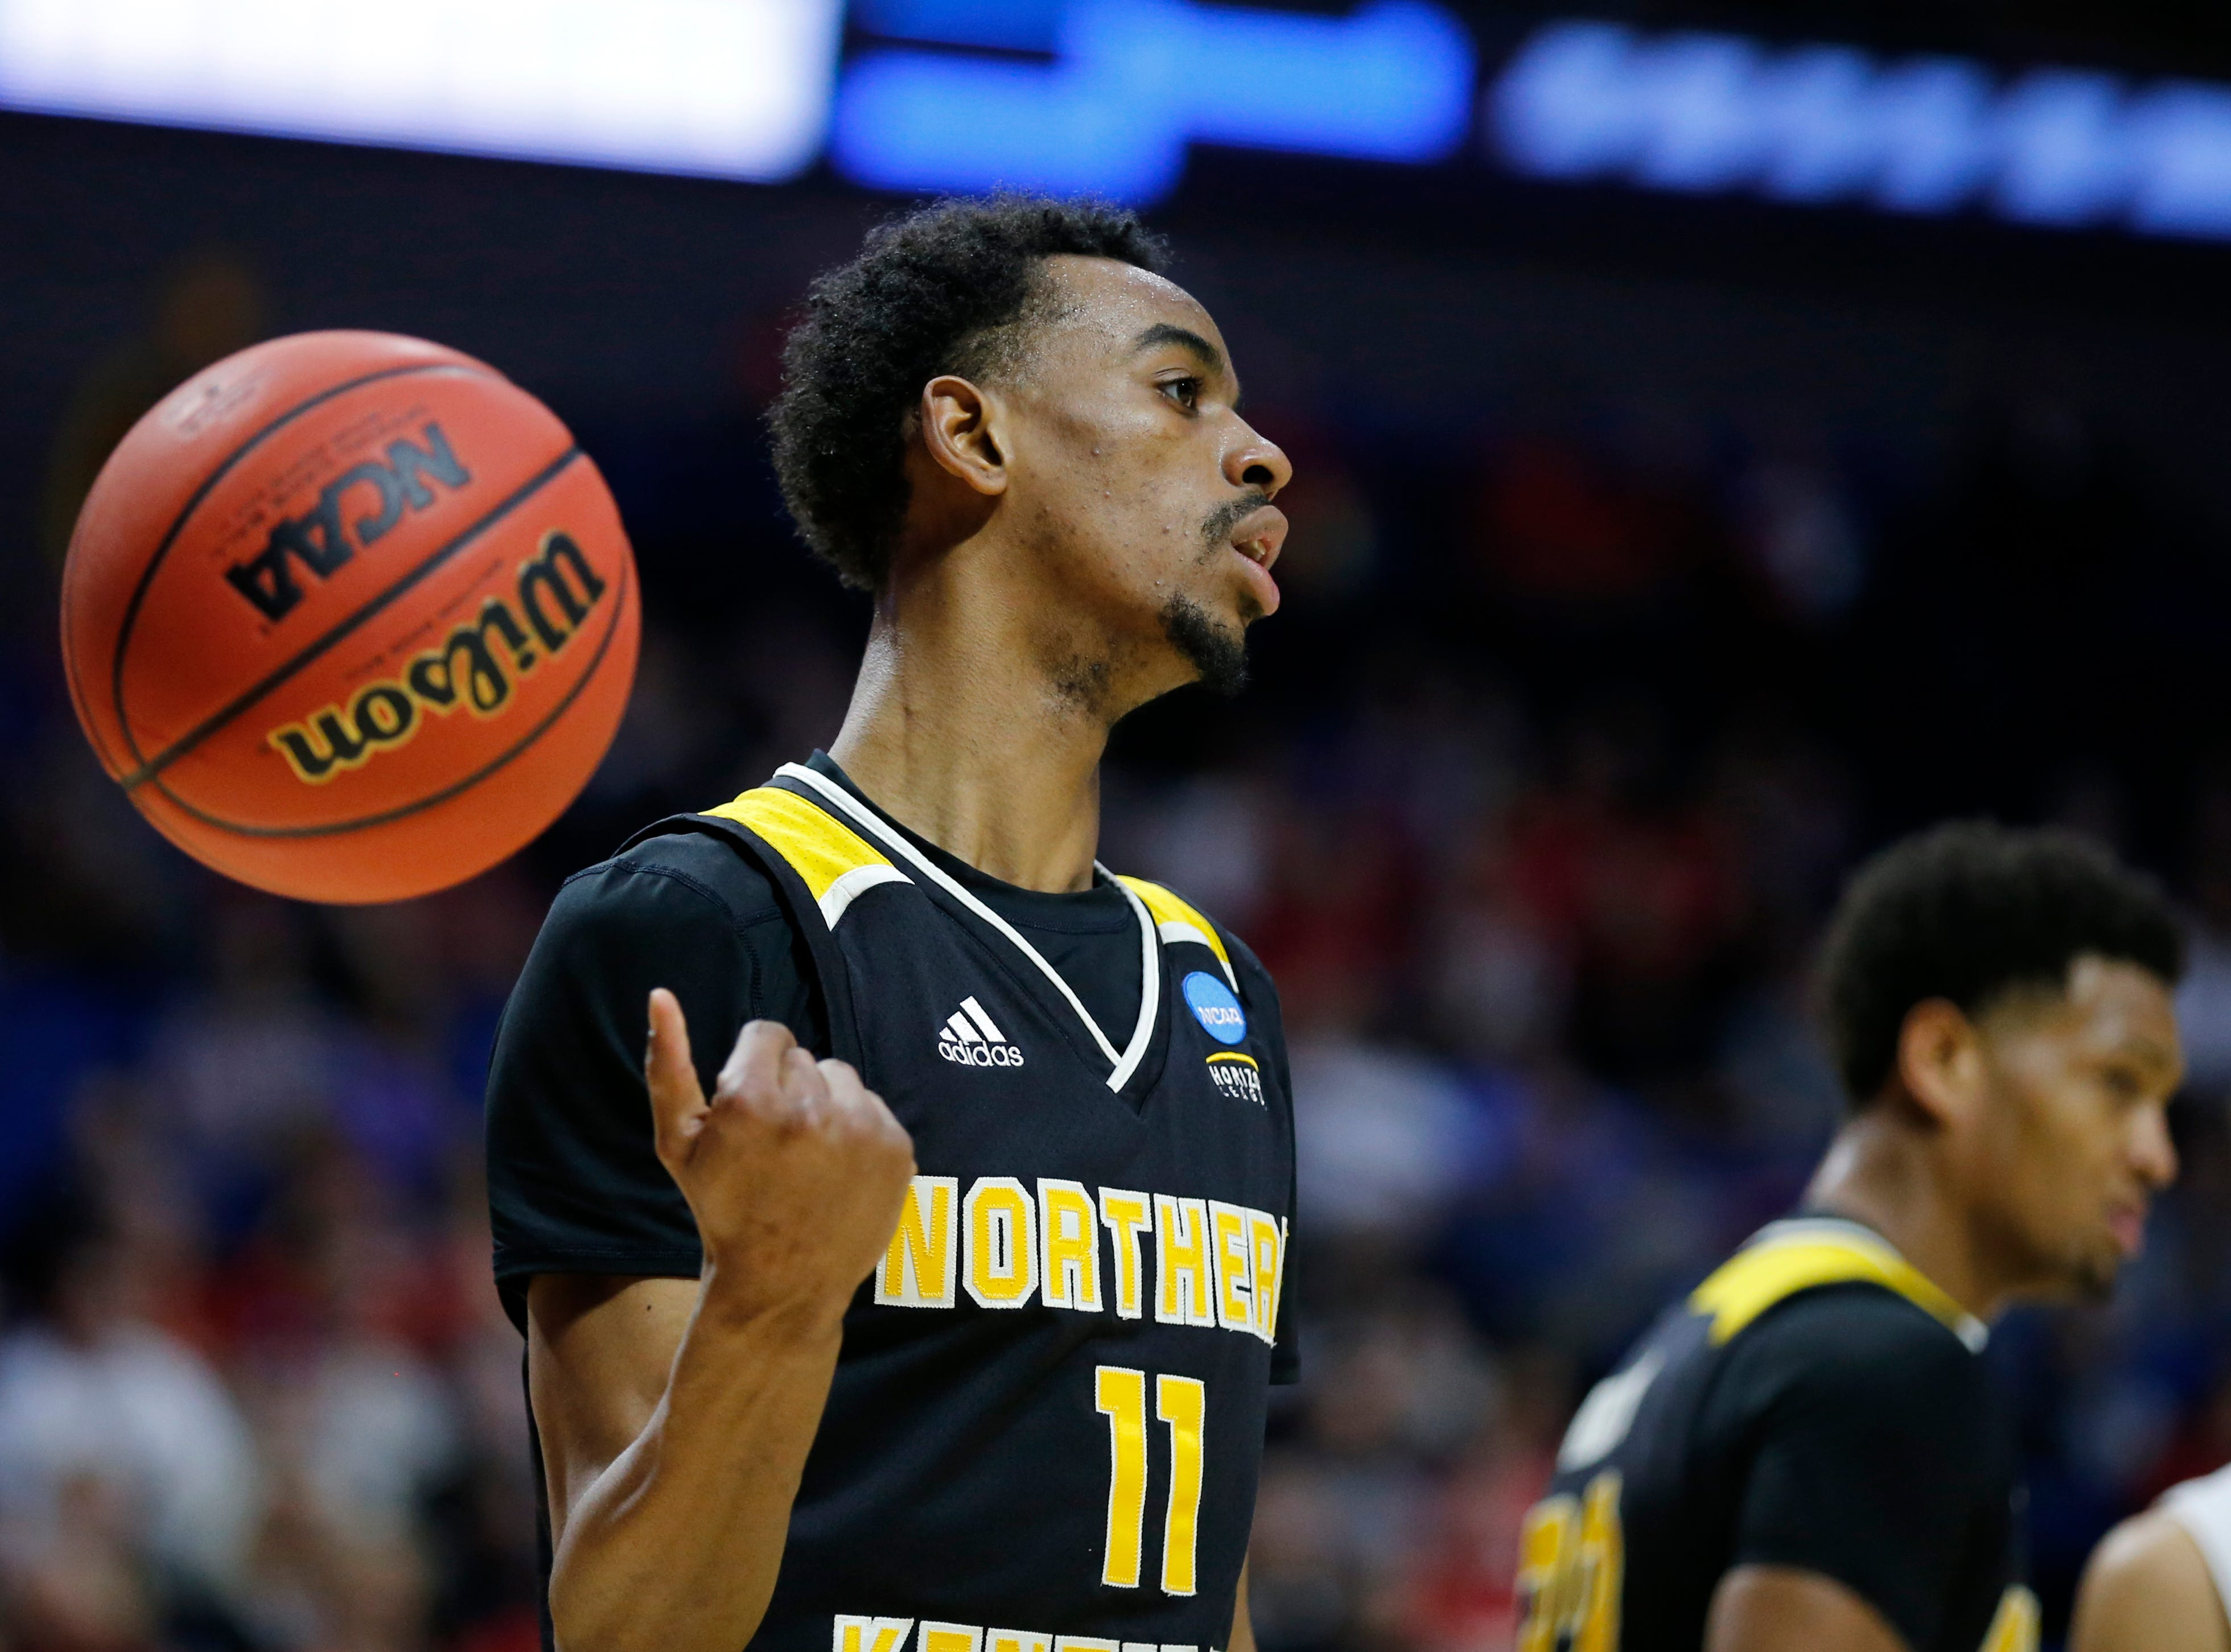 Northern Kentucky Norse guard Jalen Tate (11) tosses the ball away as the clock stops in the first half of the NCAA Tournament First Round game between the 14-seeded Northern Kentucky Norse and the 3-seeded Texas Tech Red Raiders the BOK Center in downtown Tulsa on Friday, March 22, 2019. Texas Tech led 30-26 at halftime.